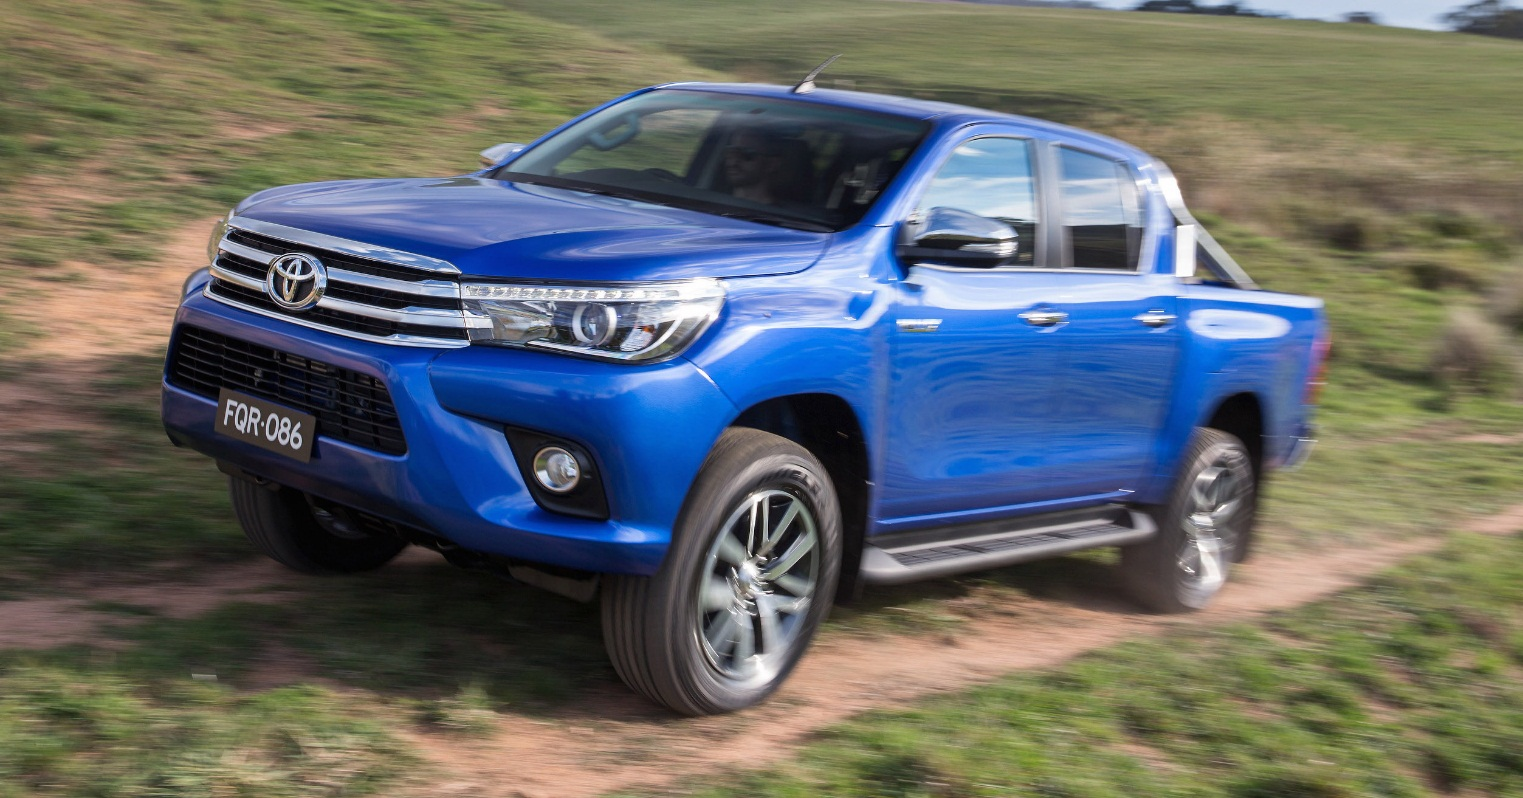 Evolution Of Toyota Hilux- A Walk Through Its Life